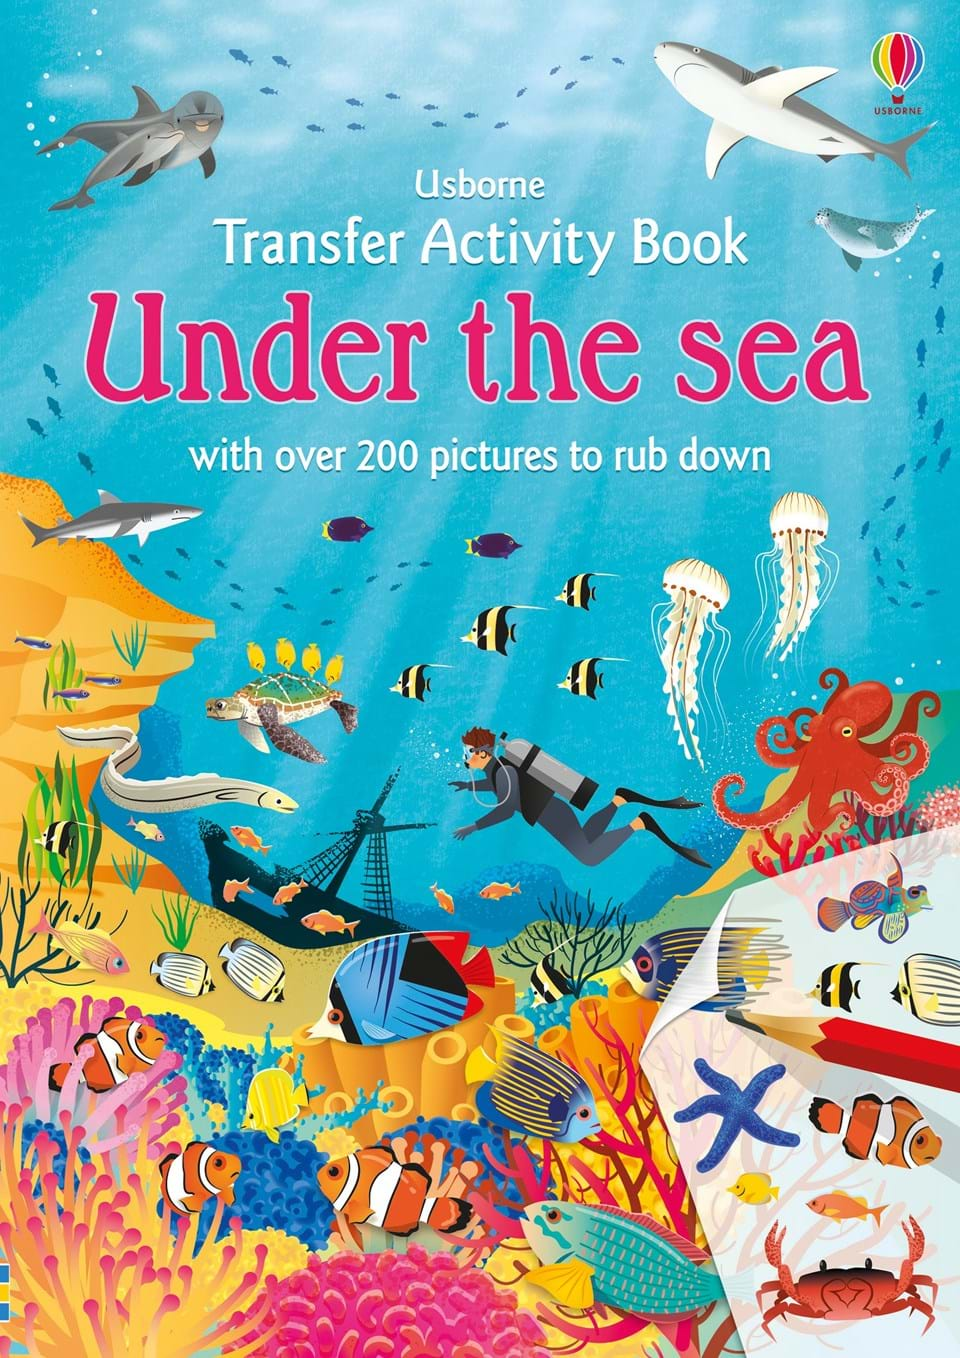 Under the Sea - Transfer Activity Book